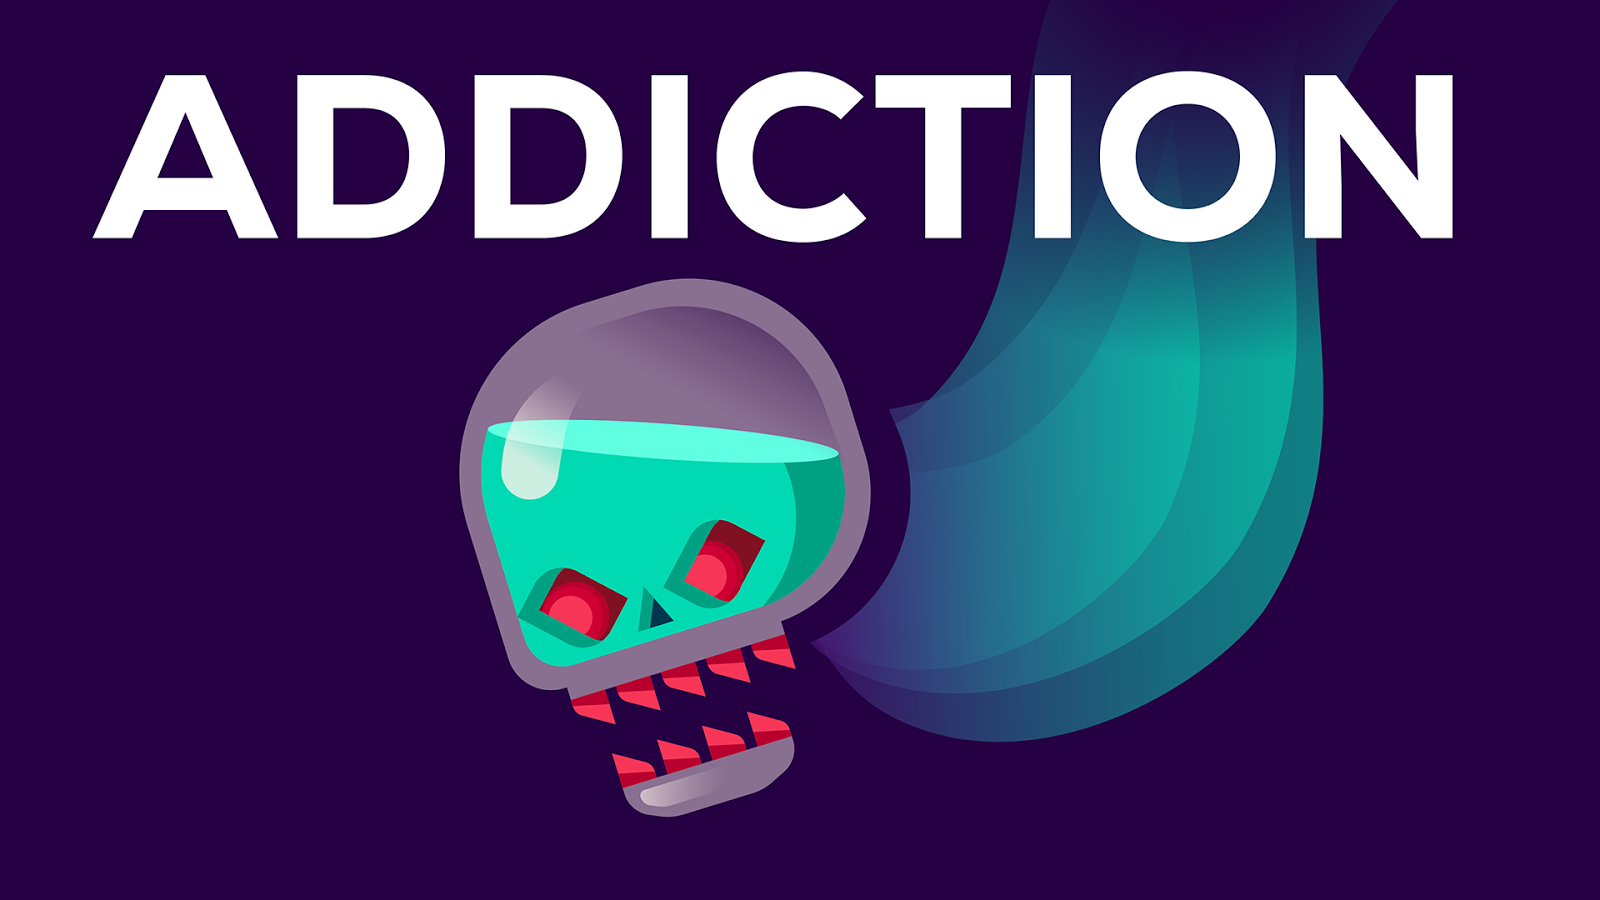 What causes addiction? In a Nutshell by Kurzgesagt